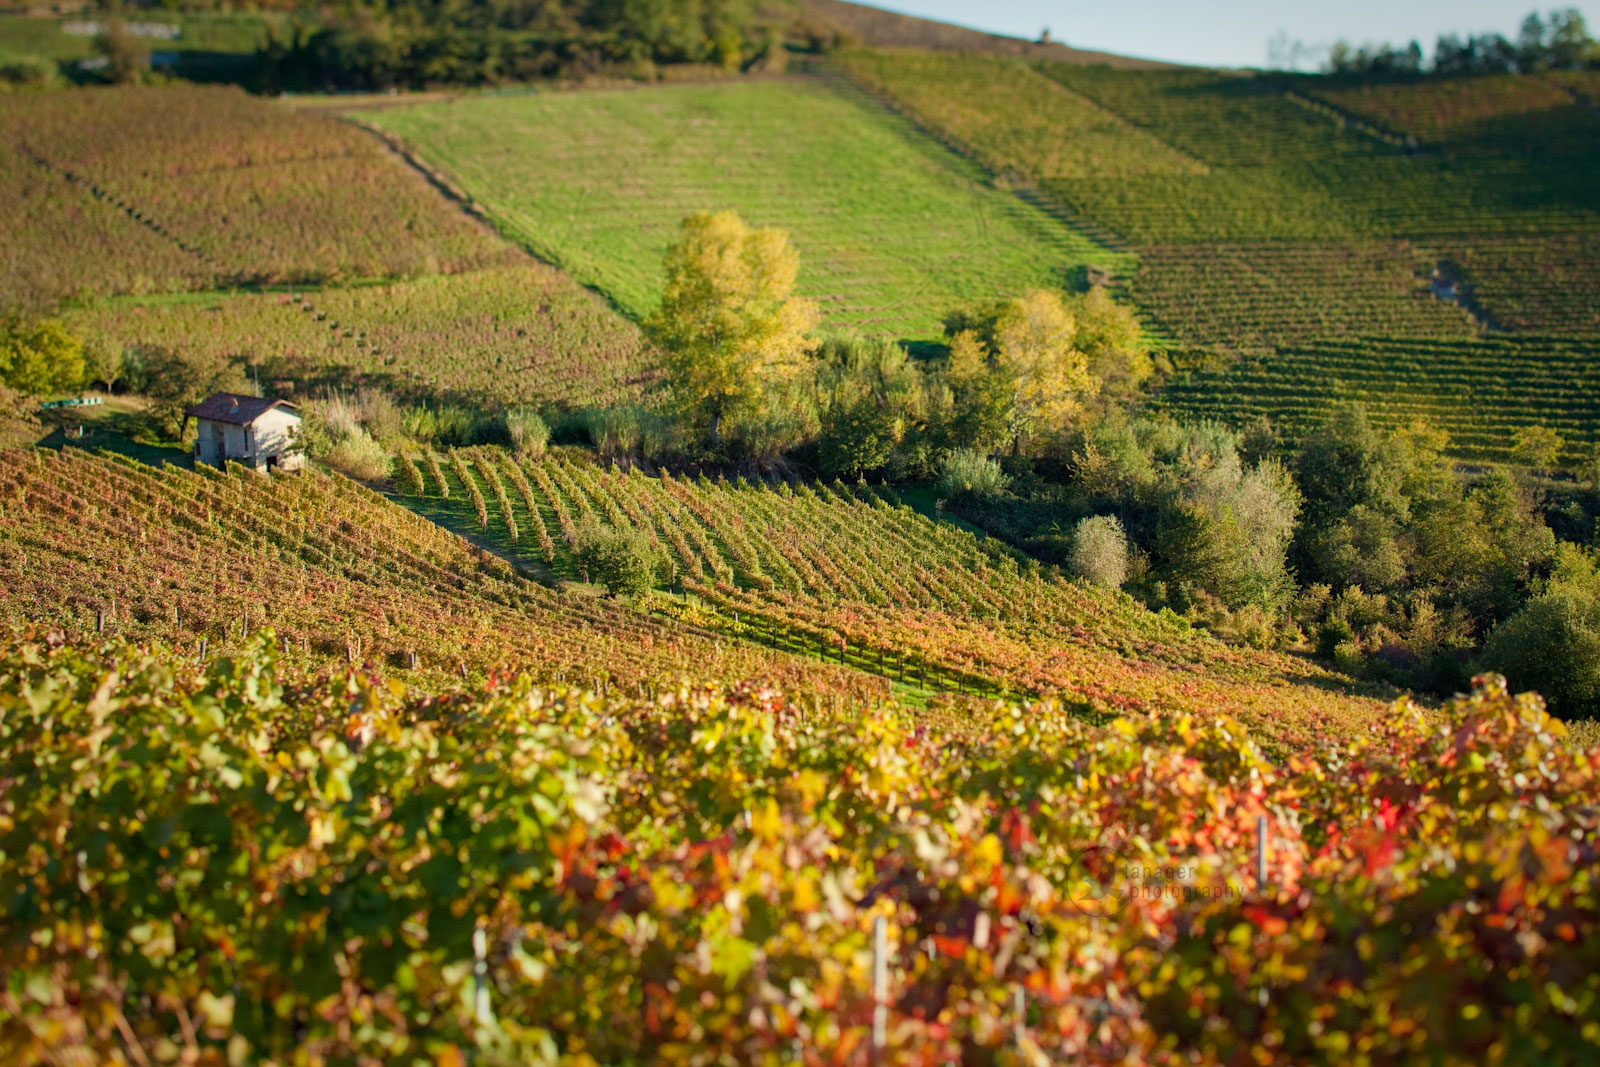 Vineyard in fall foliage near Barolo, Italy.